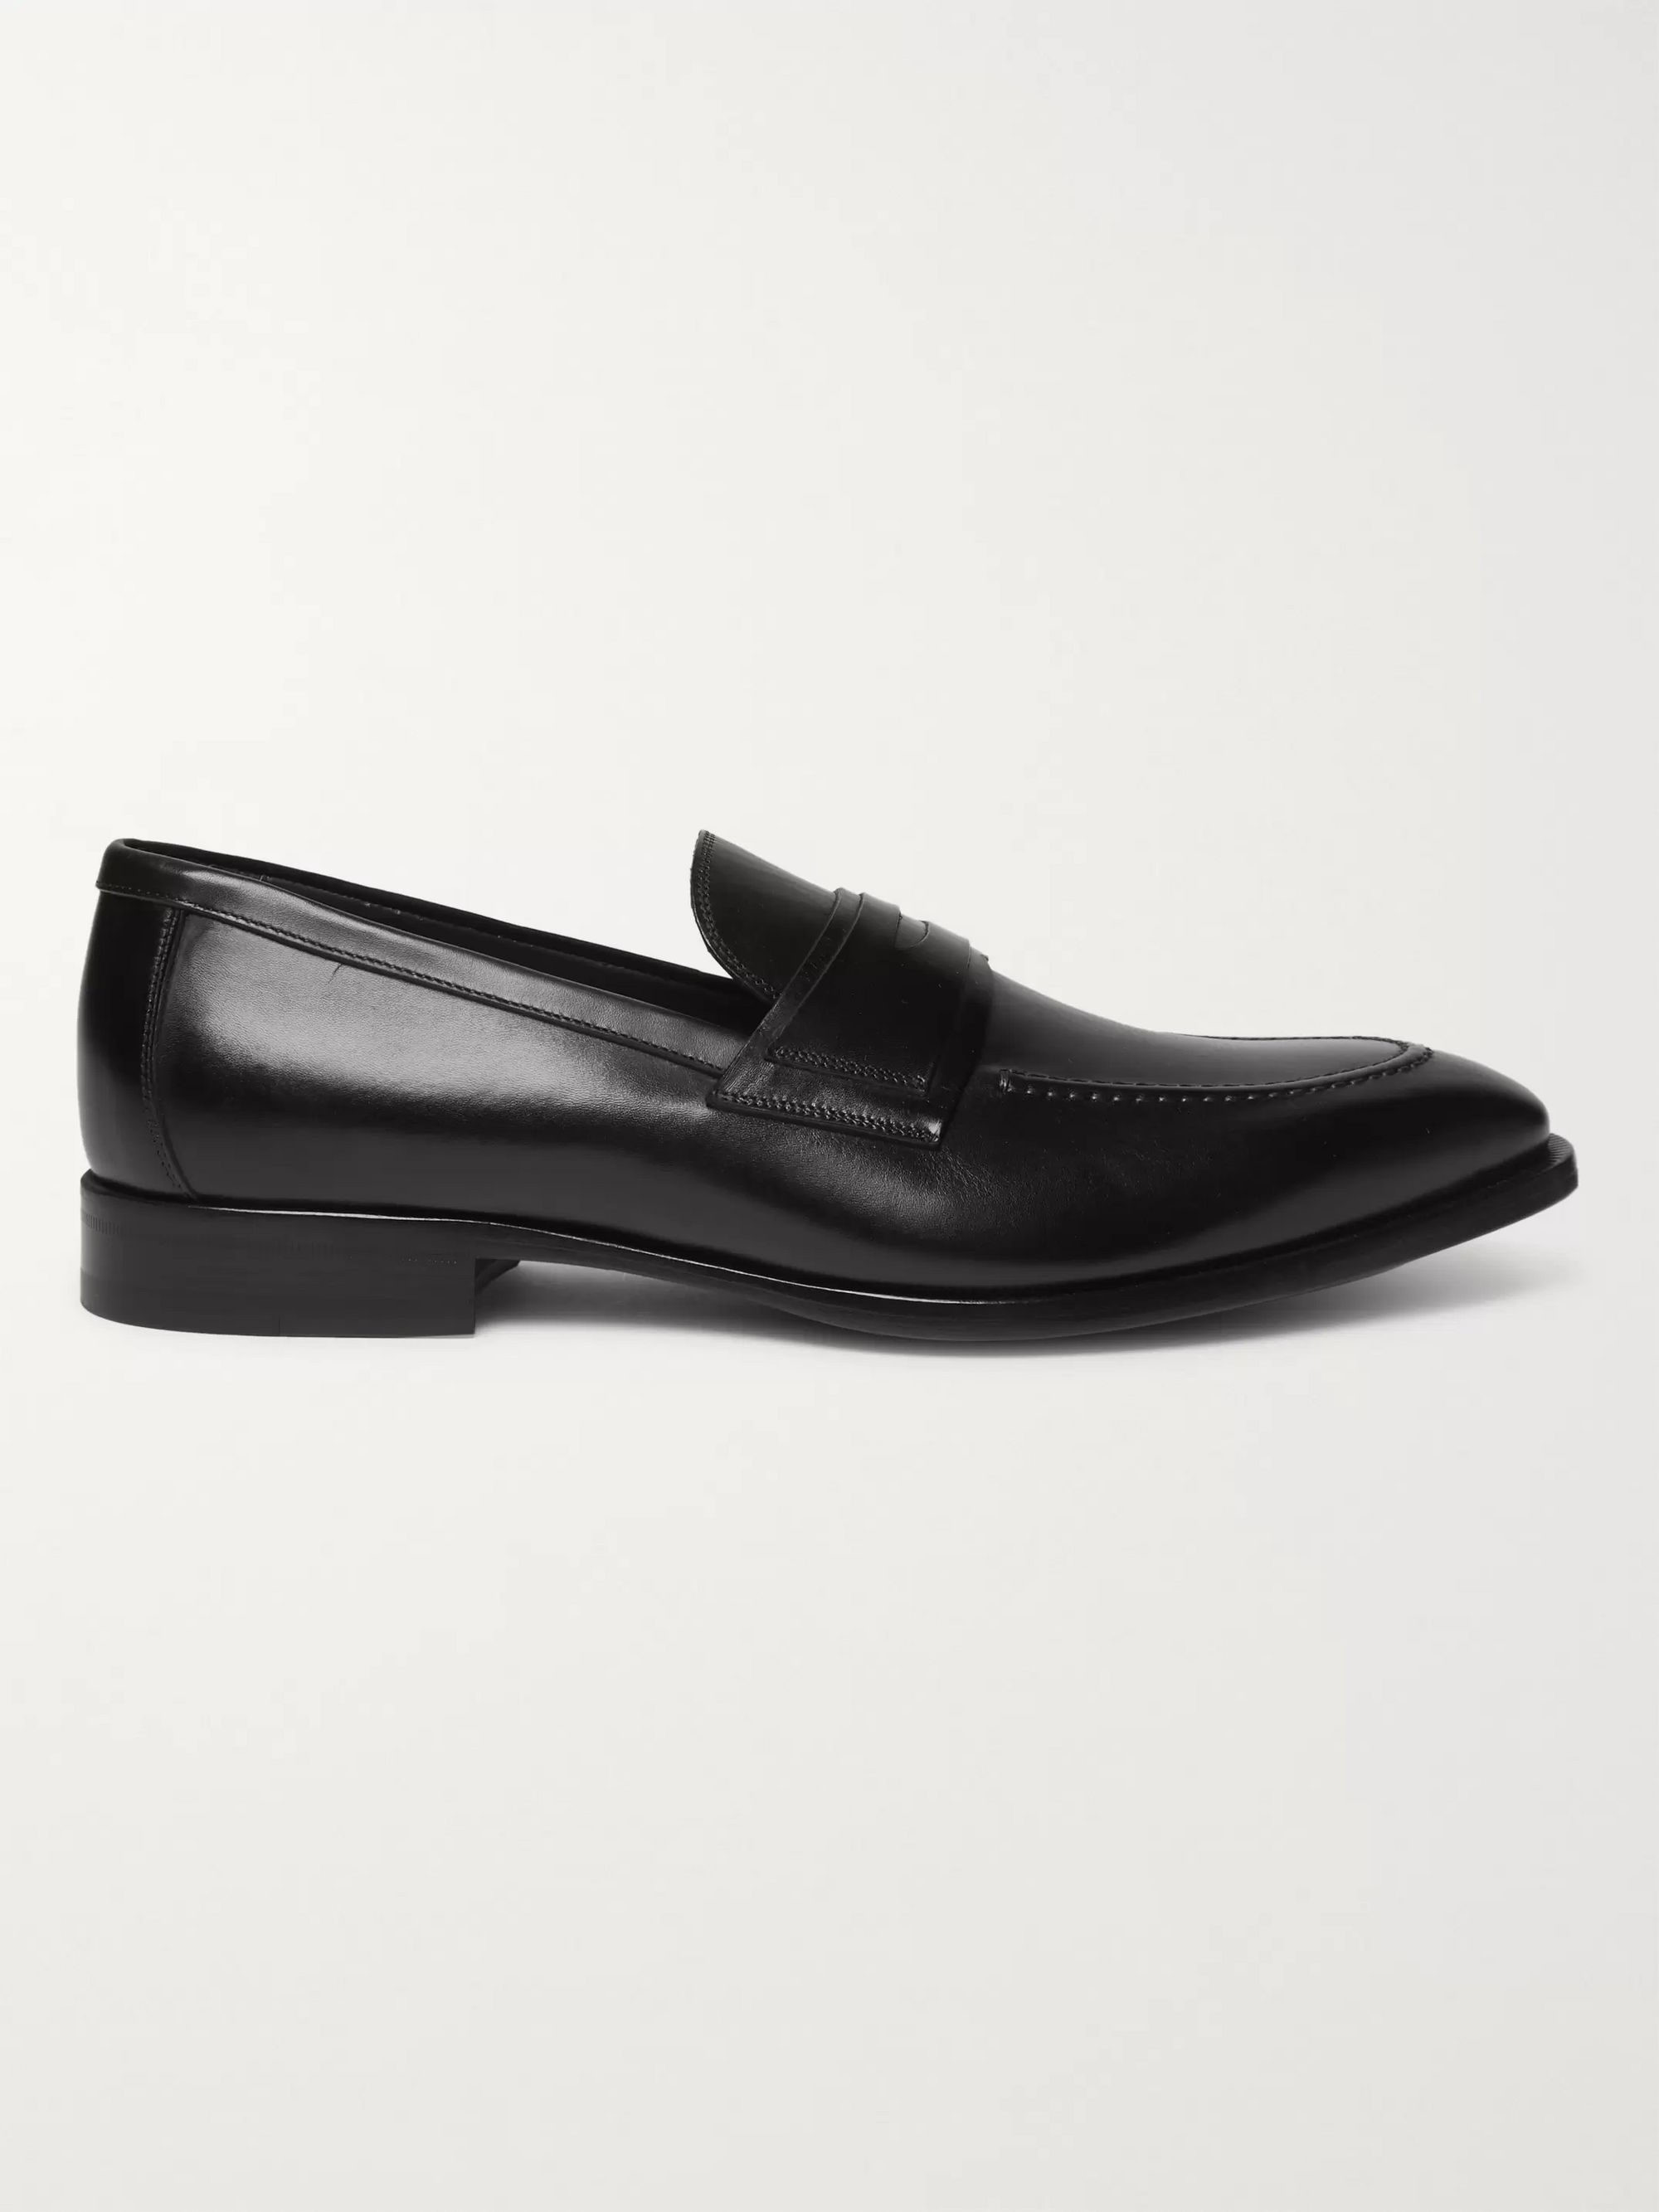 Dunhill Leather Penny Loafers